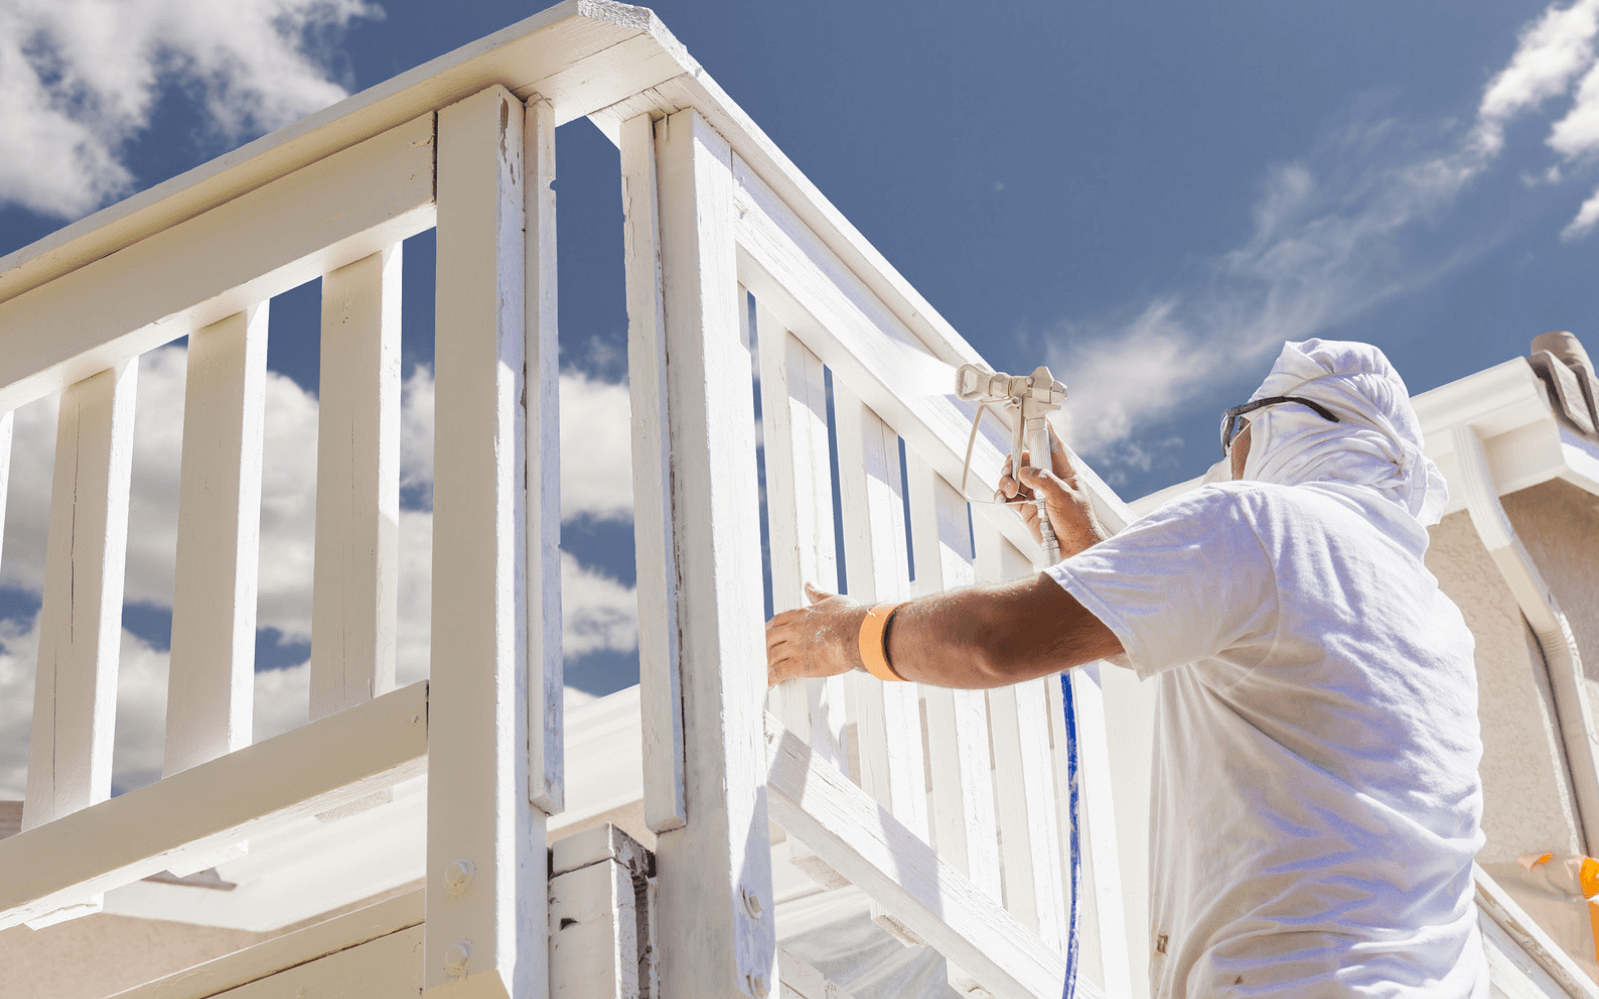 House painter spray painting fence